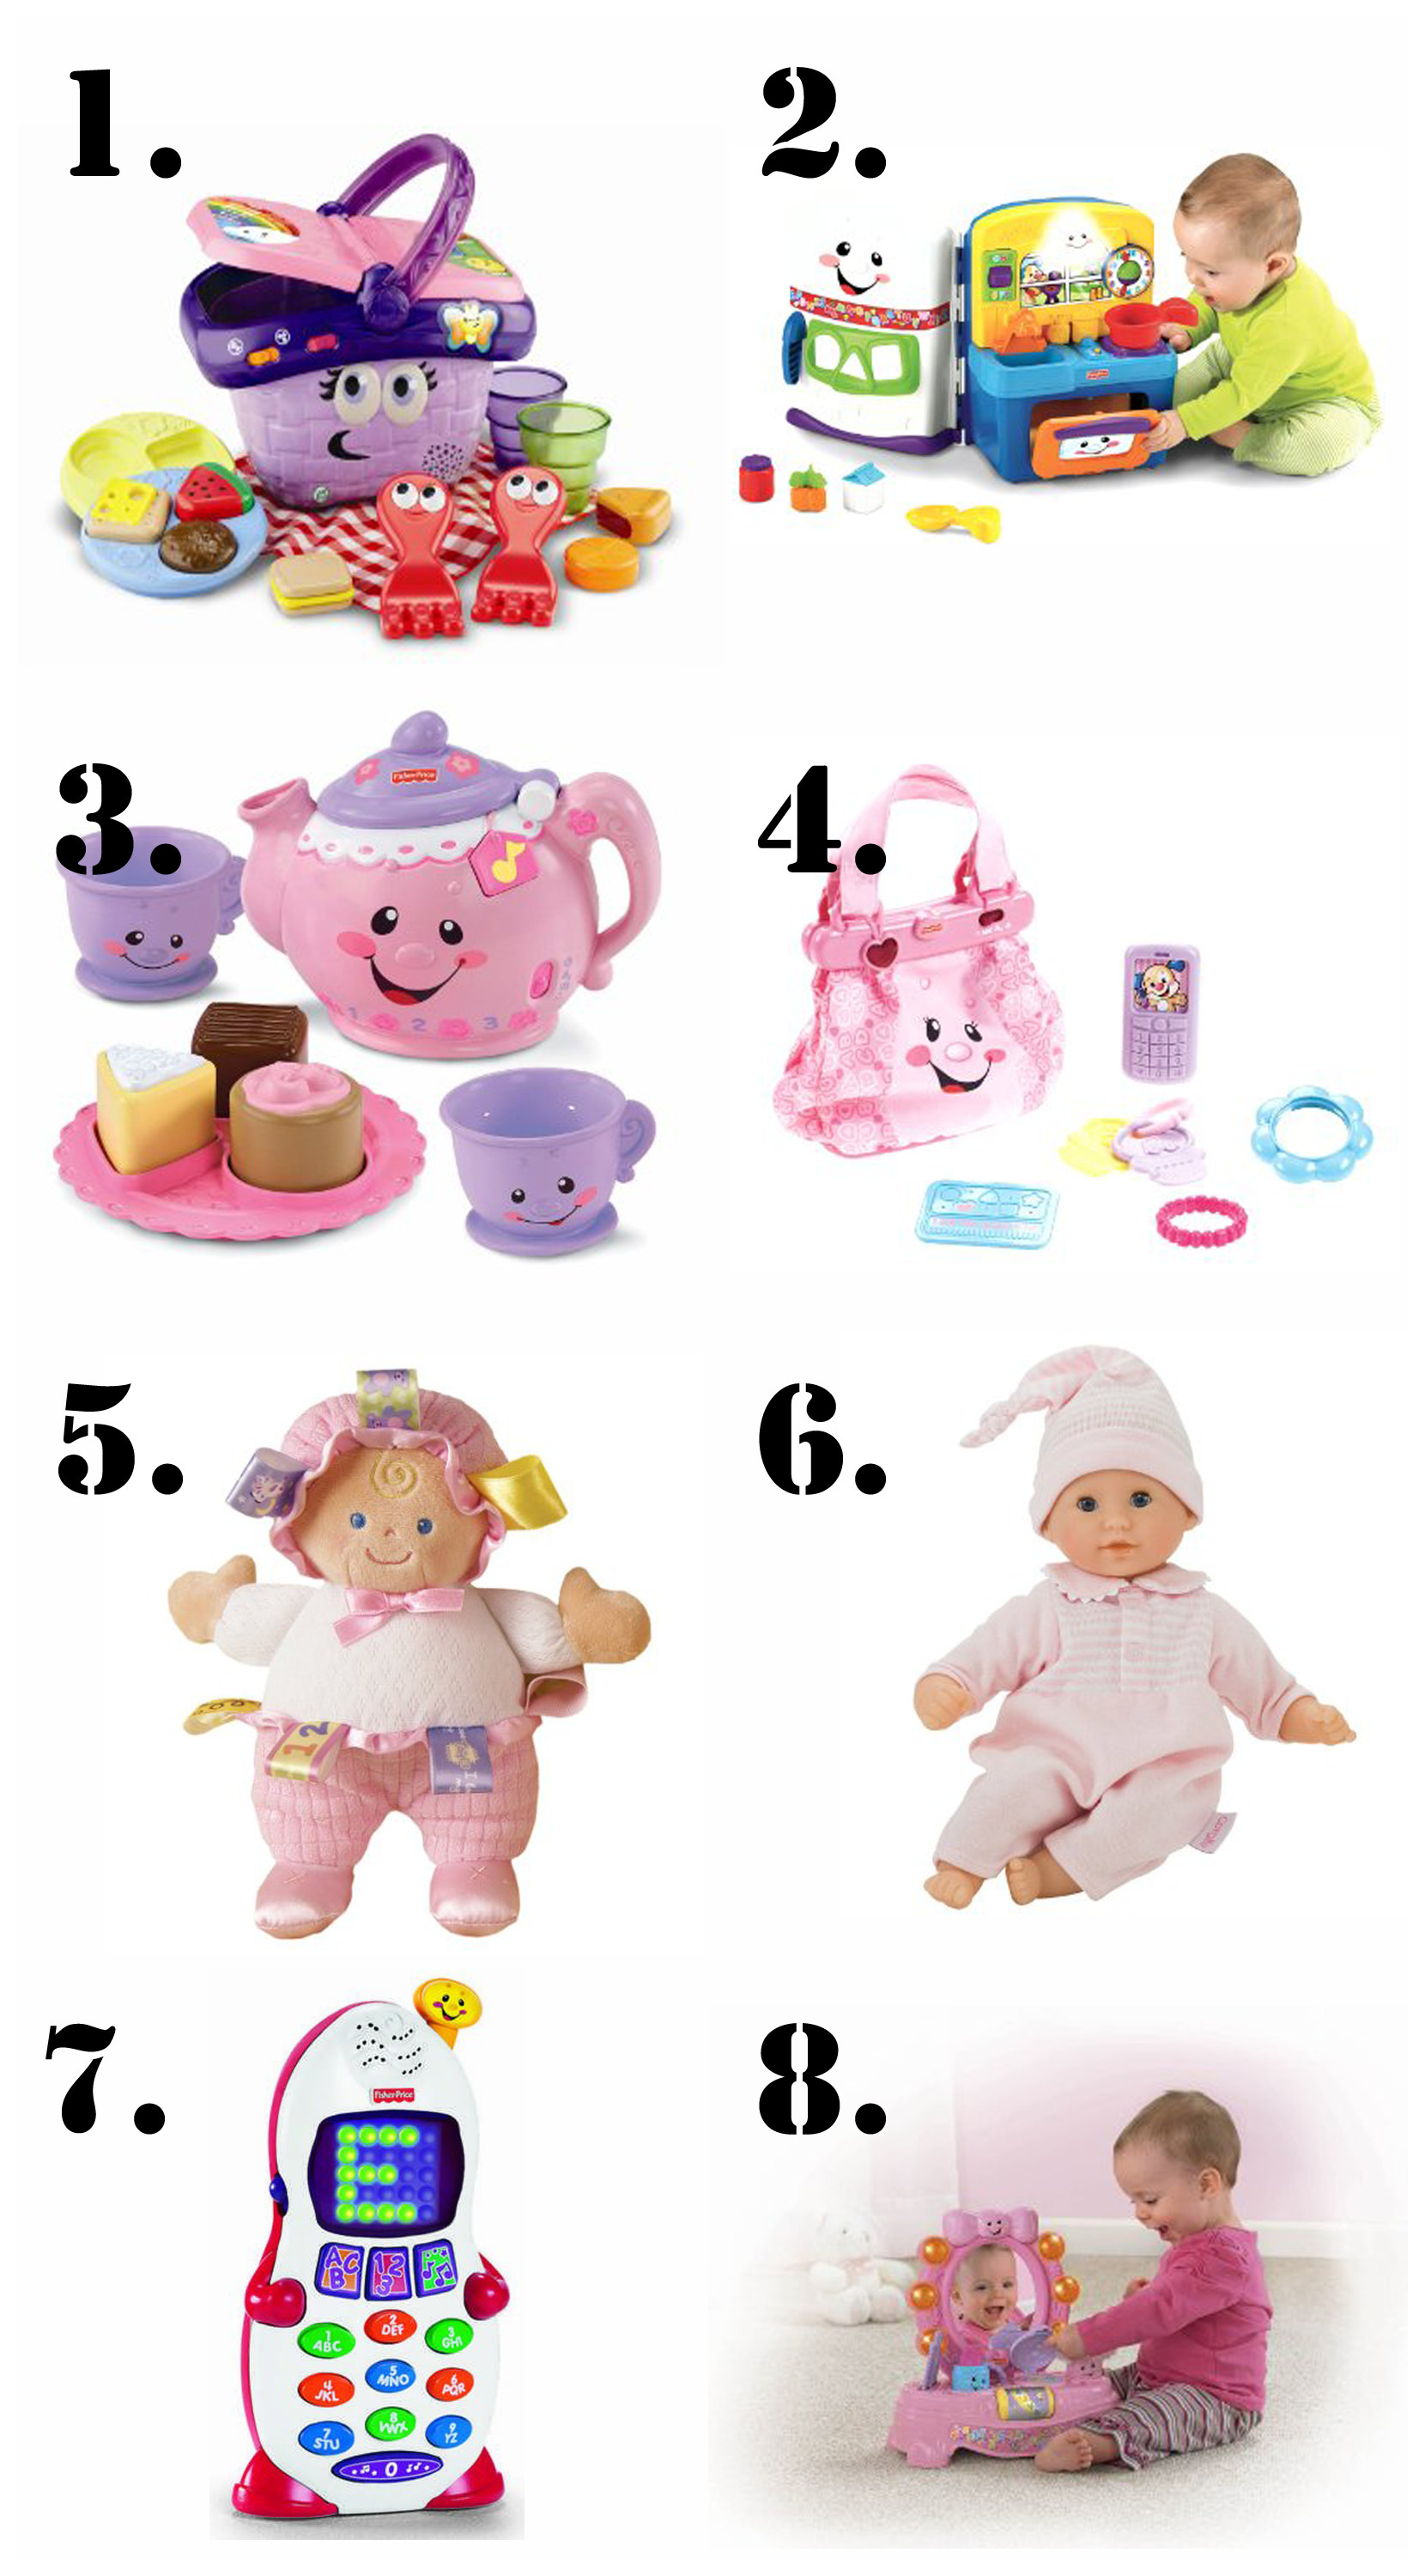 Best ideas about Baby First Birthday Gift Ideas For Her . Save or Pin best birthday presents for a 1 year old Now.